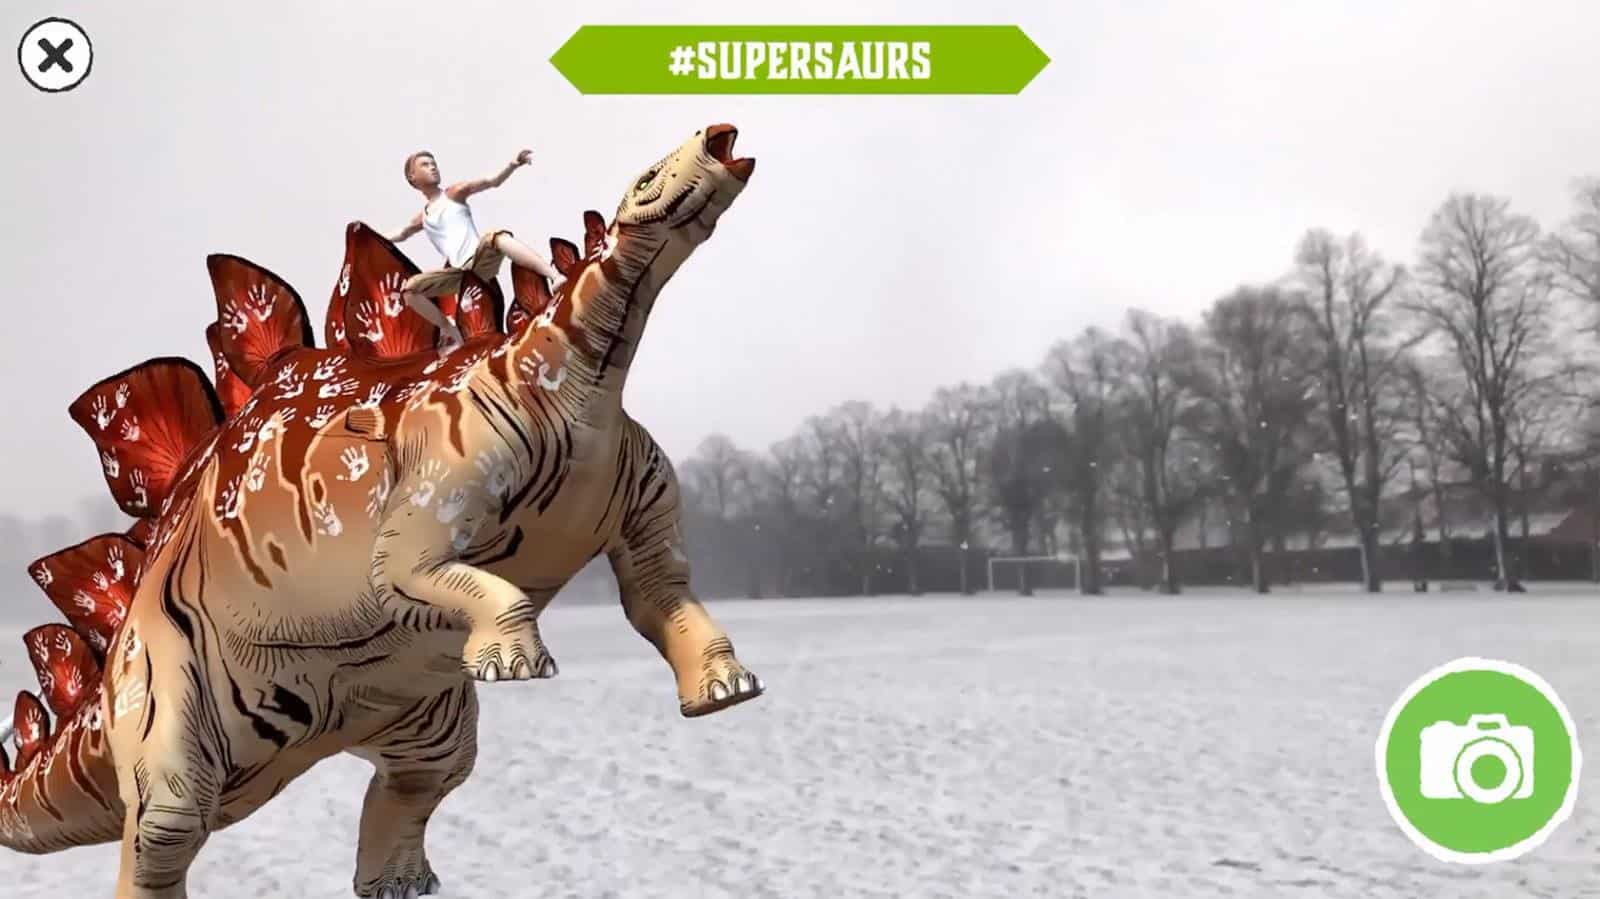 supersaurs 2 augmented reality book